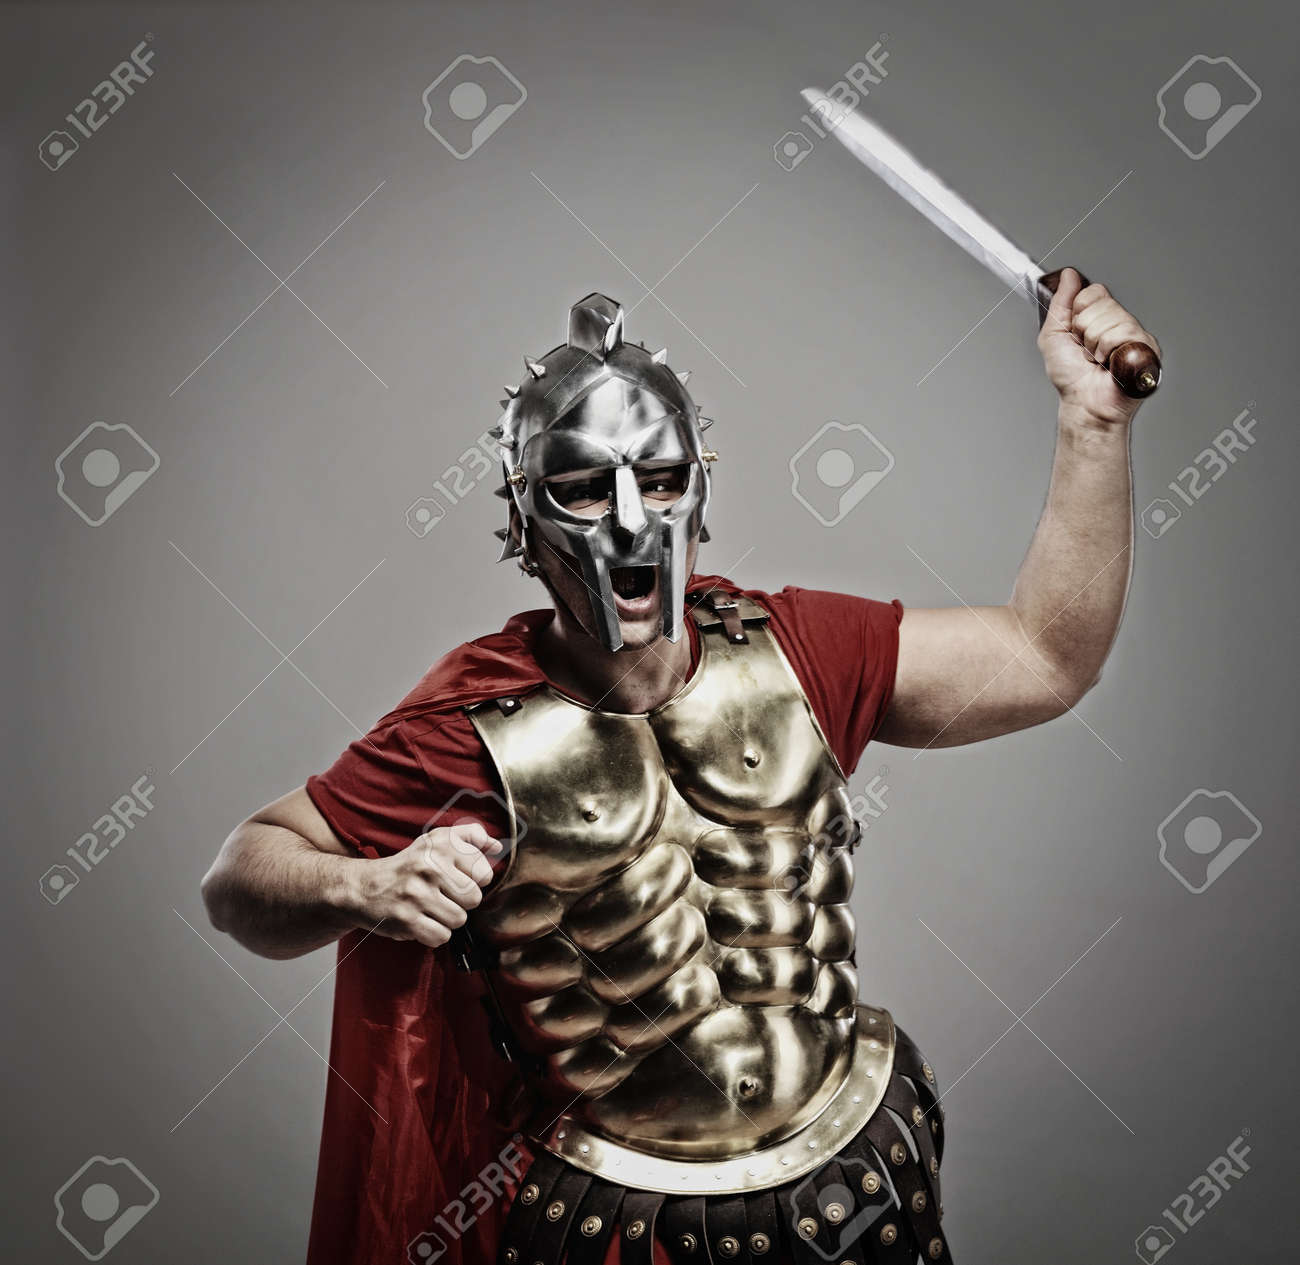 Legionary soldier ready for a war Stock Photo - 7125949